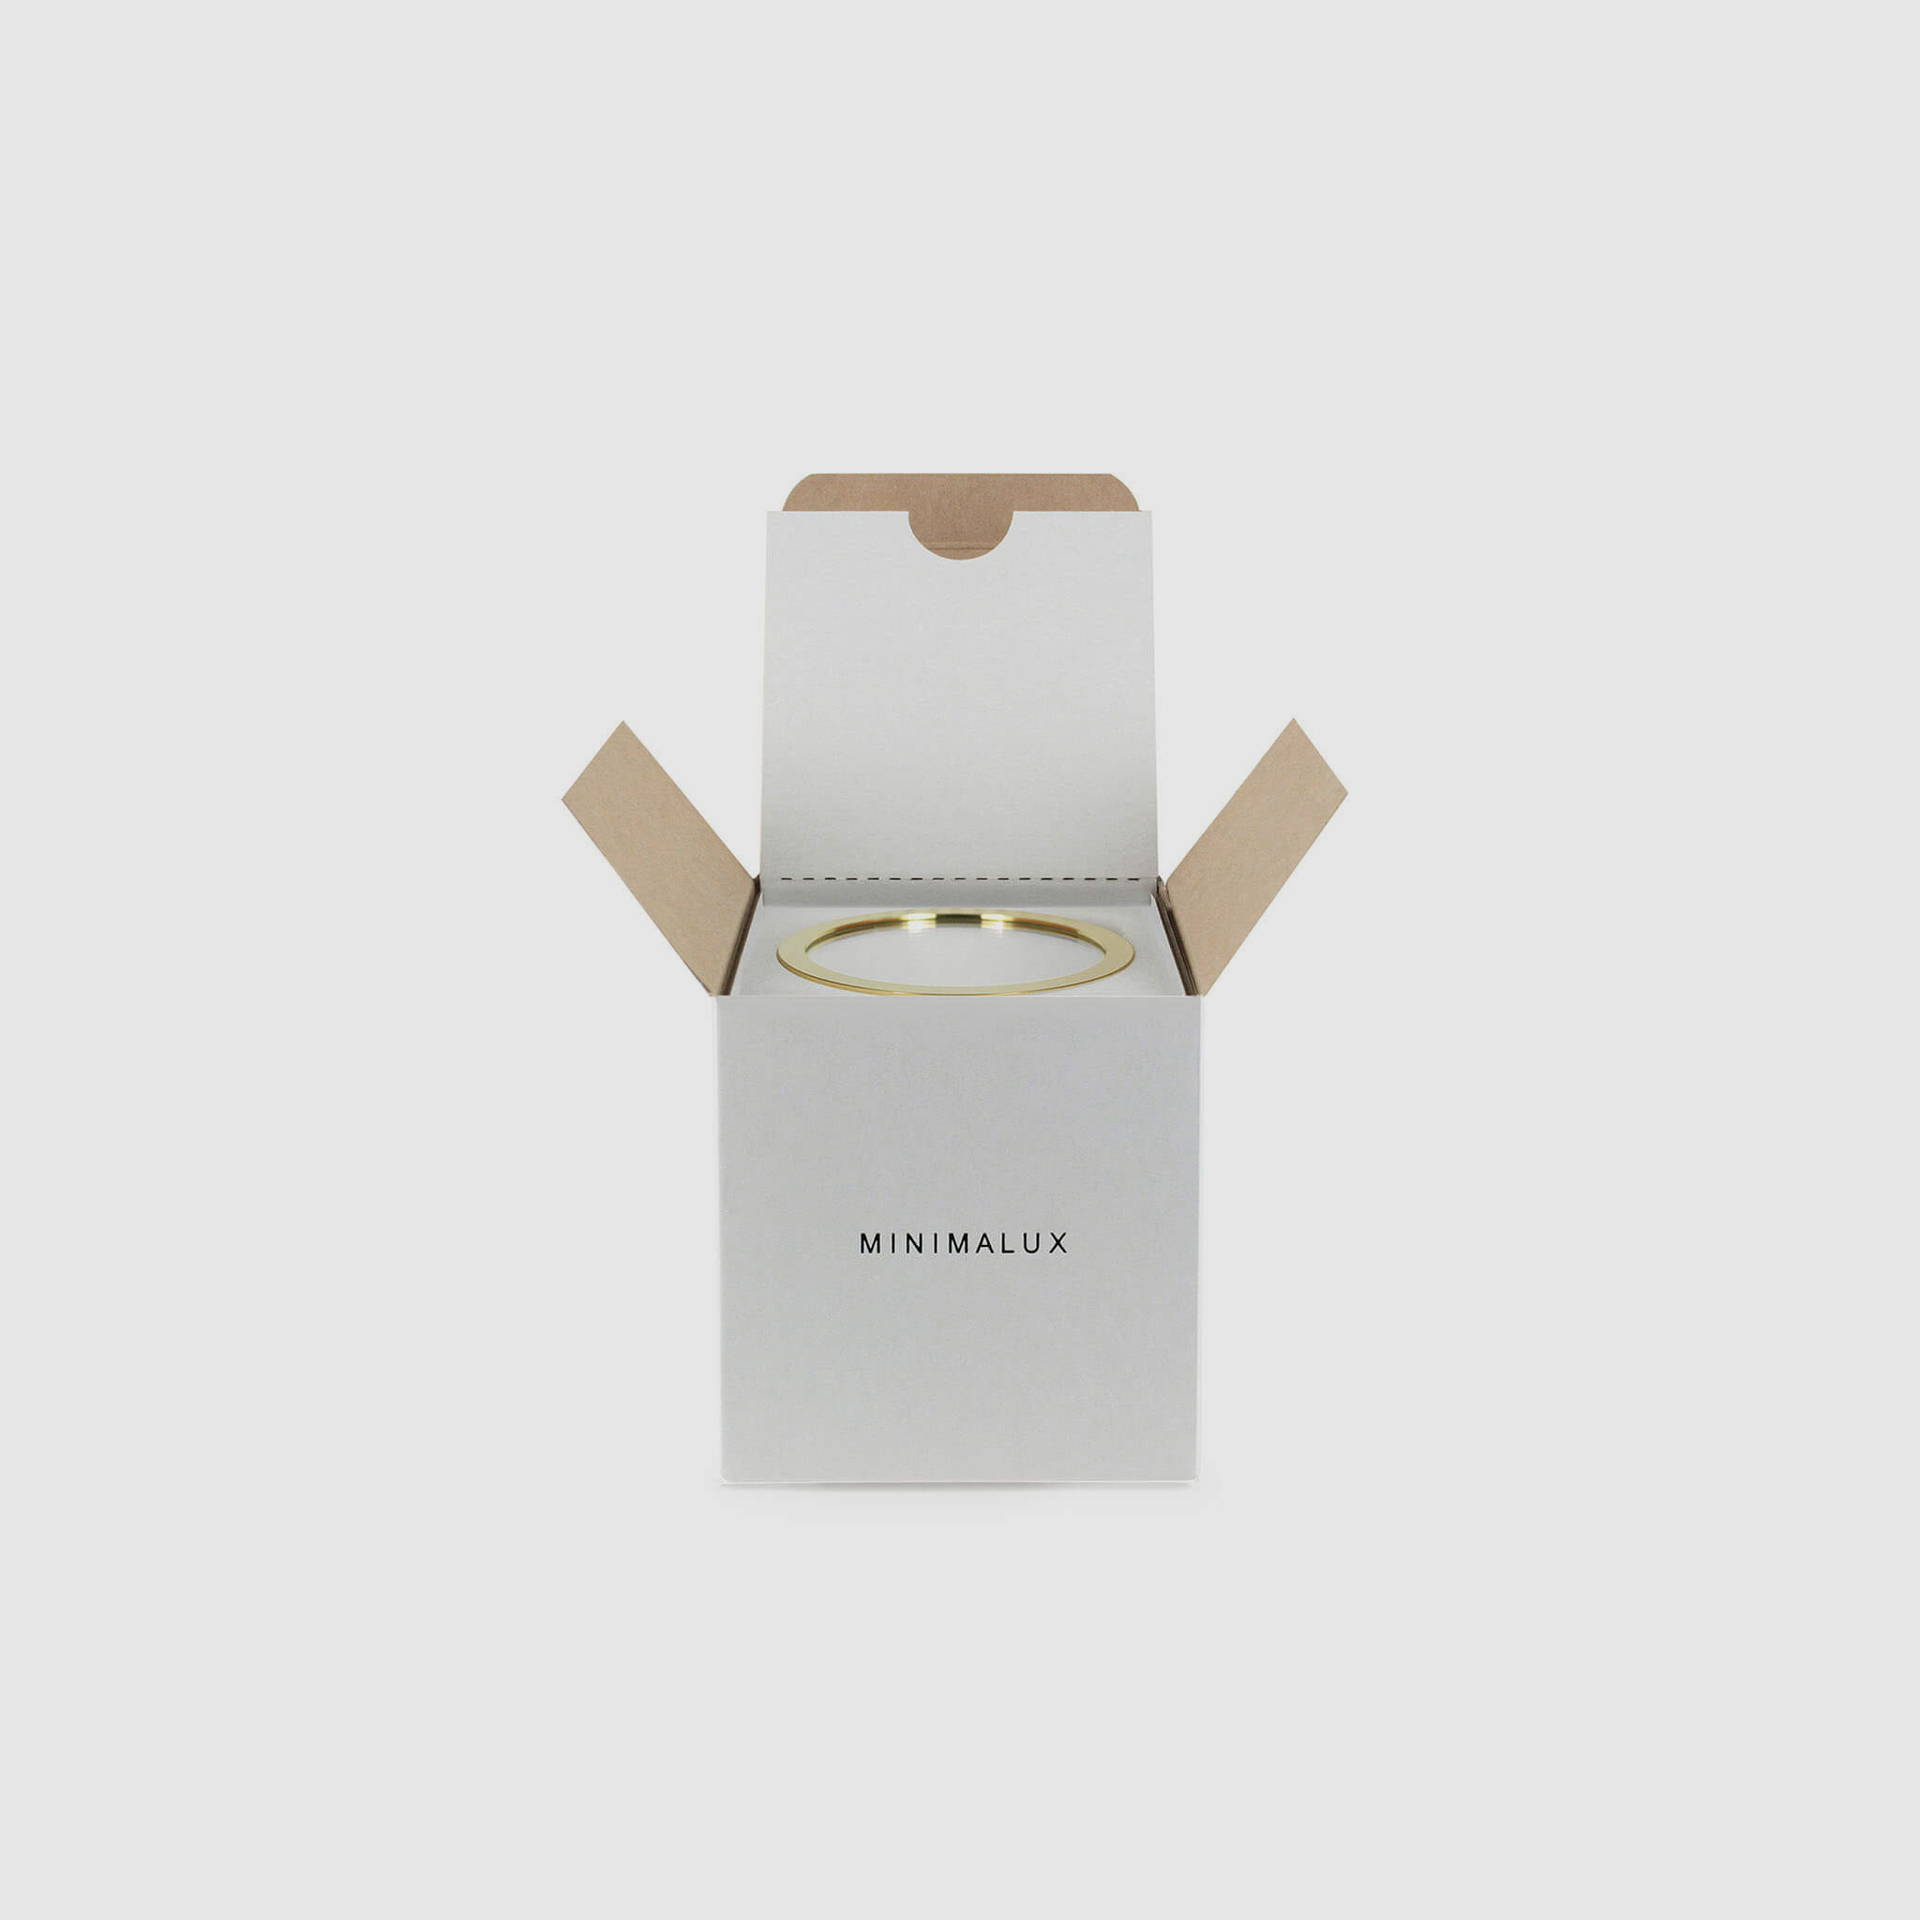 Pocket Mirror packaging